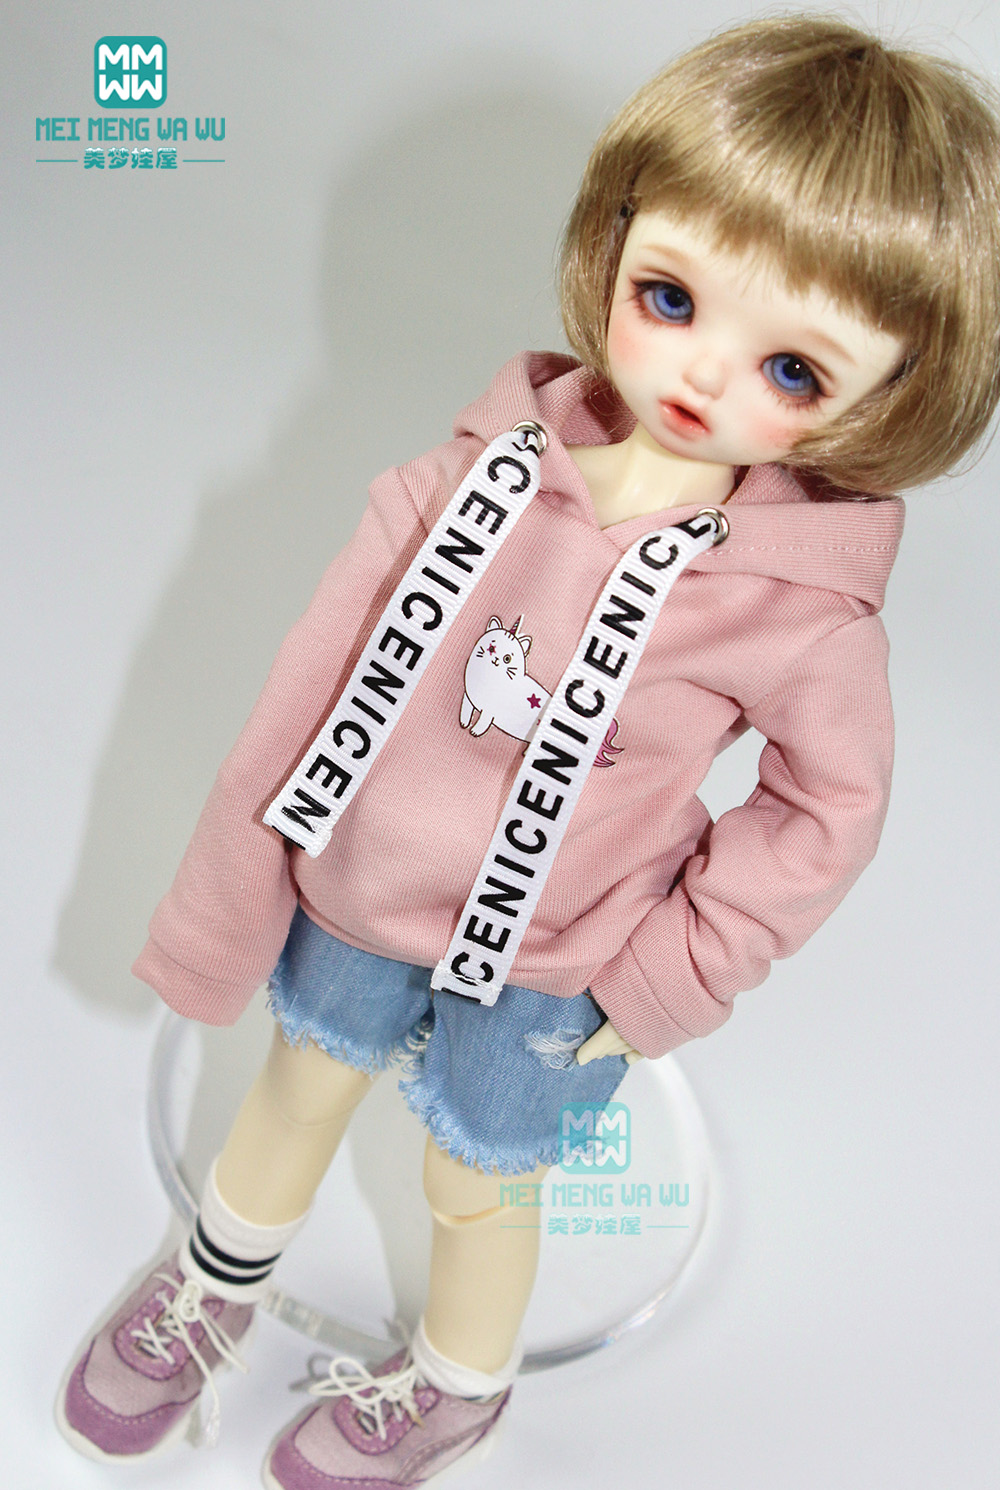 <font><b>BJD</b></font> accessories fashion three-piece casual sweater Raw shorts and socks for 27cm-30cm <font><b>1/6</b></font> <font><b>BJD</b></font> YOSD doll <font><b>clothes</b></font> image